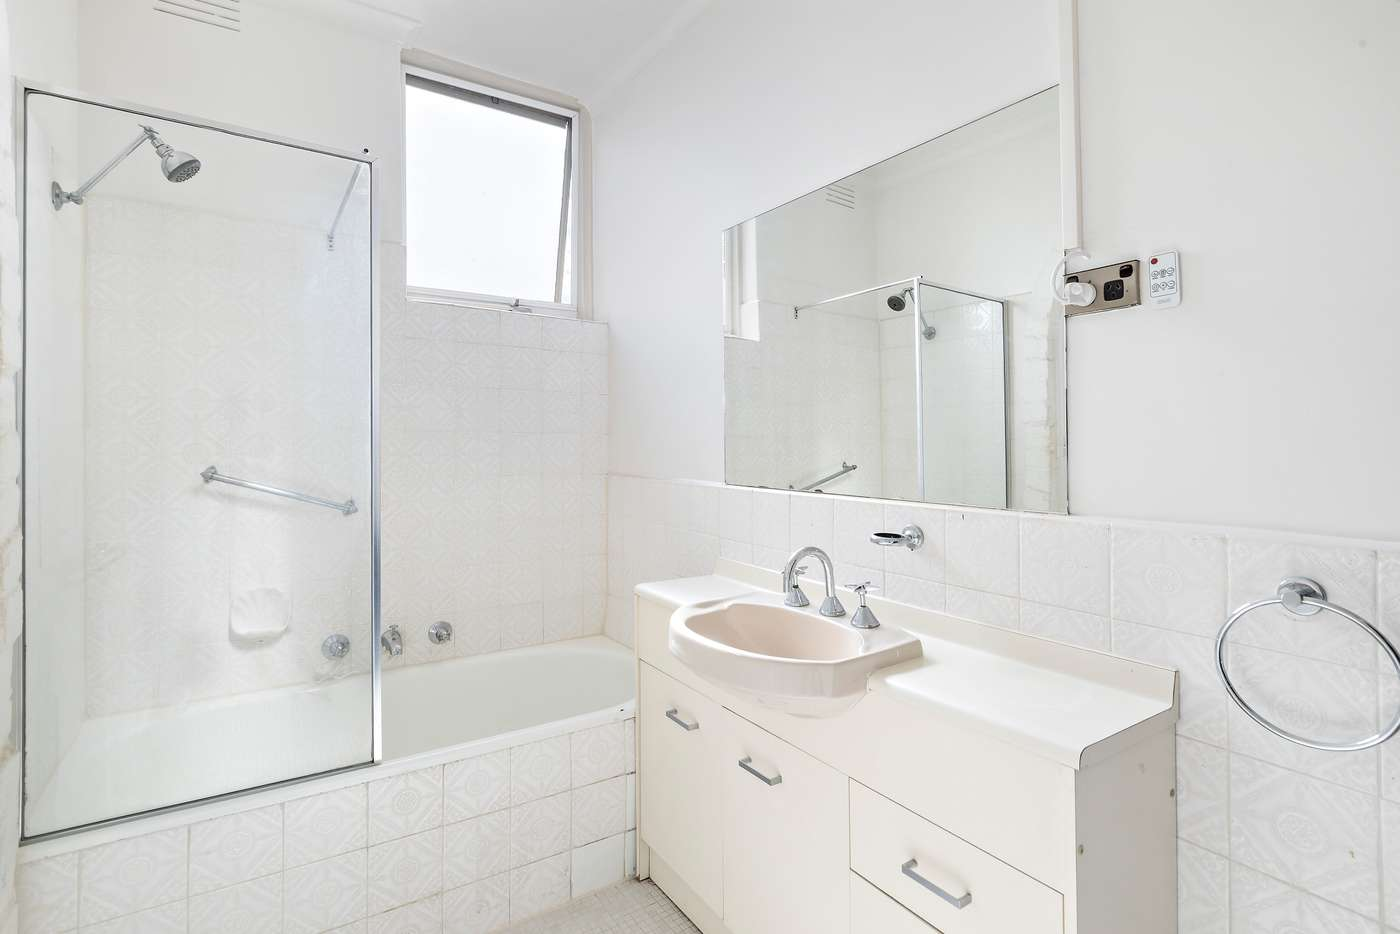 Sixth view of Homely apartment listing, 7/25 Irving Avenue, Prahran VIC 3181